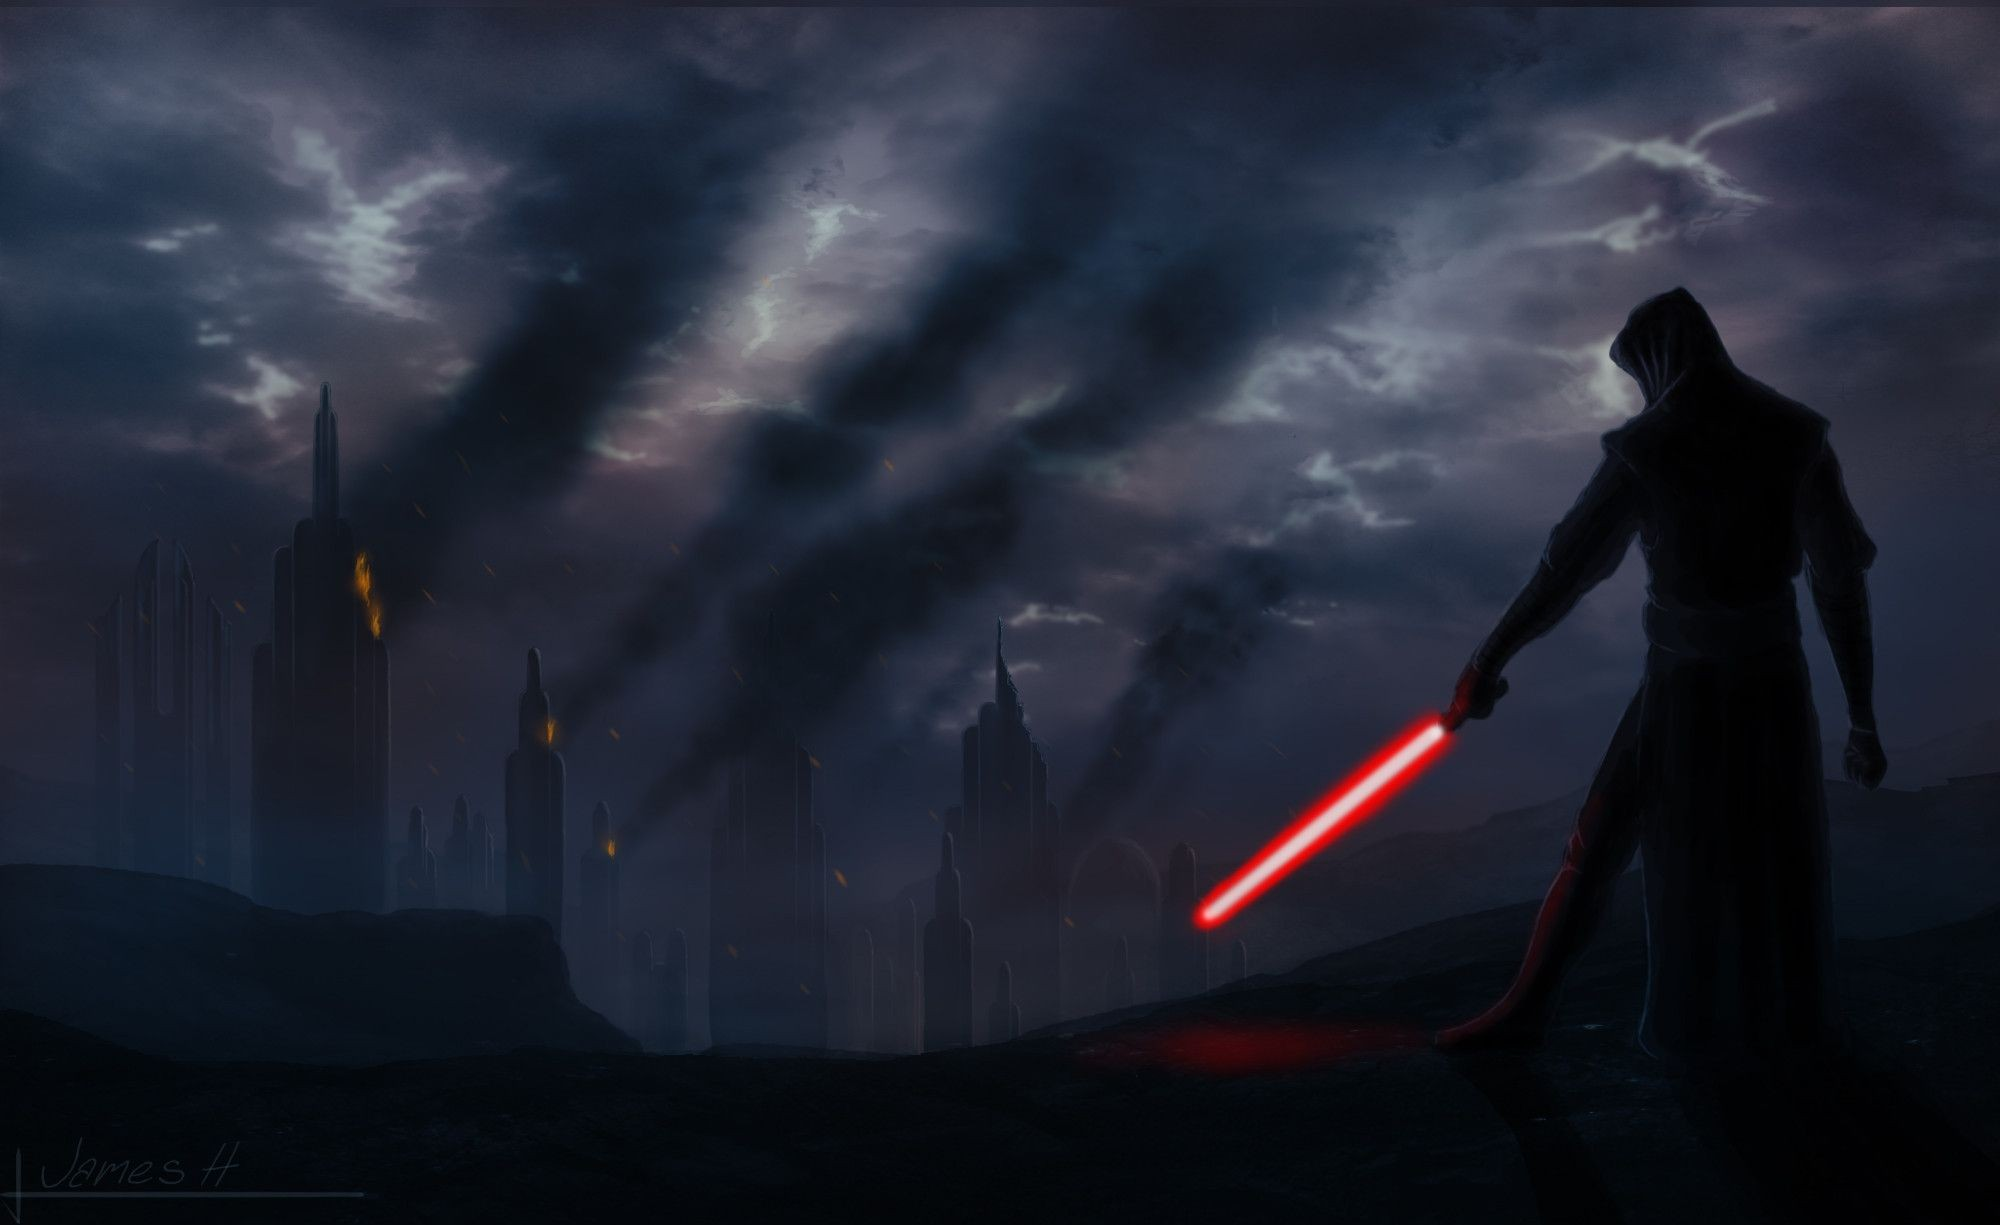 Star Wars Sith Wallpaper Download Src Star Wars Sith Dark Star Wars Background 2000x1225 Download Hd Wallpaper Wallpapertip